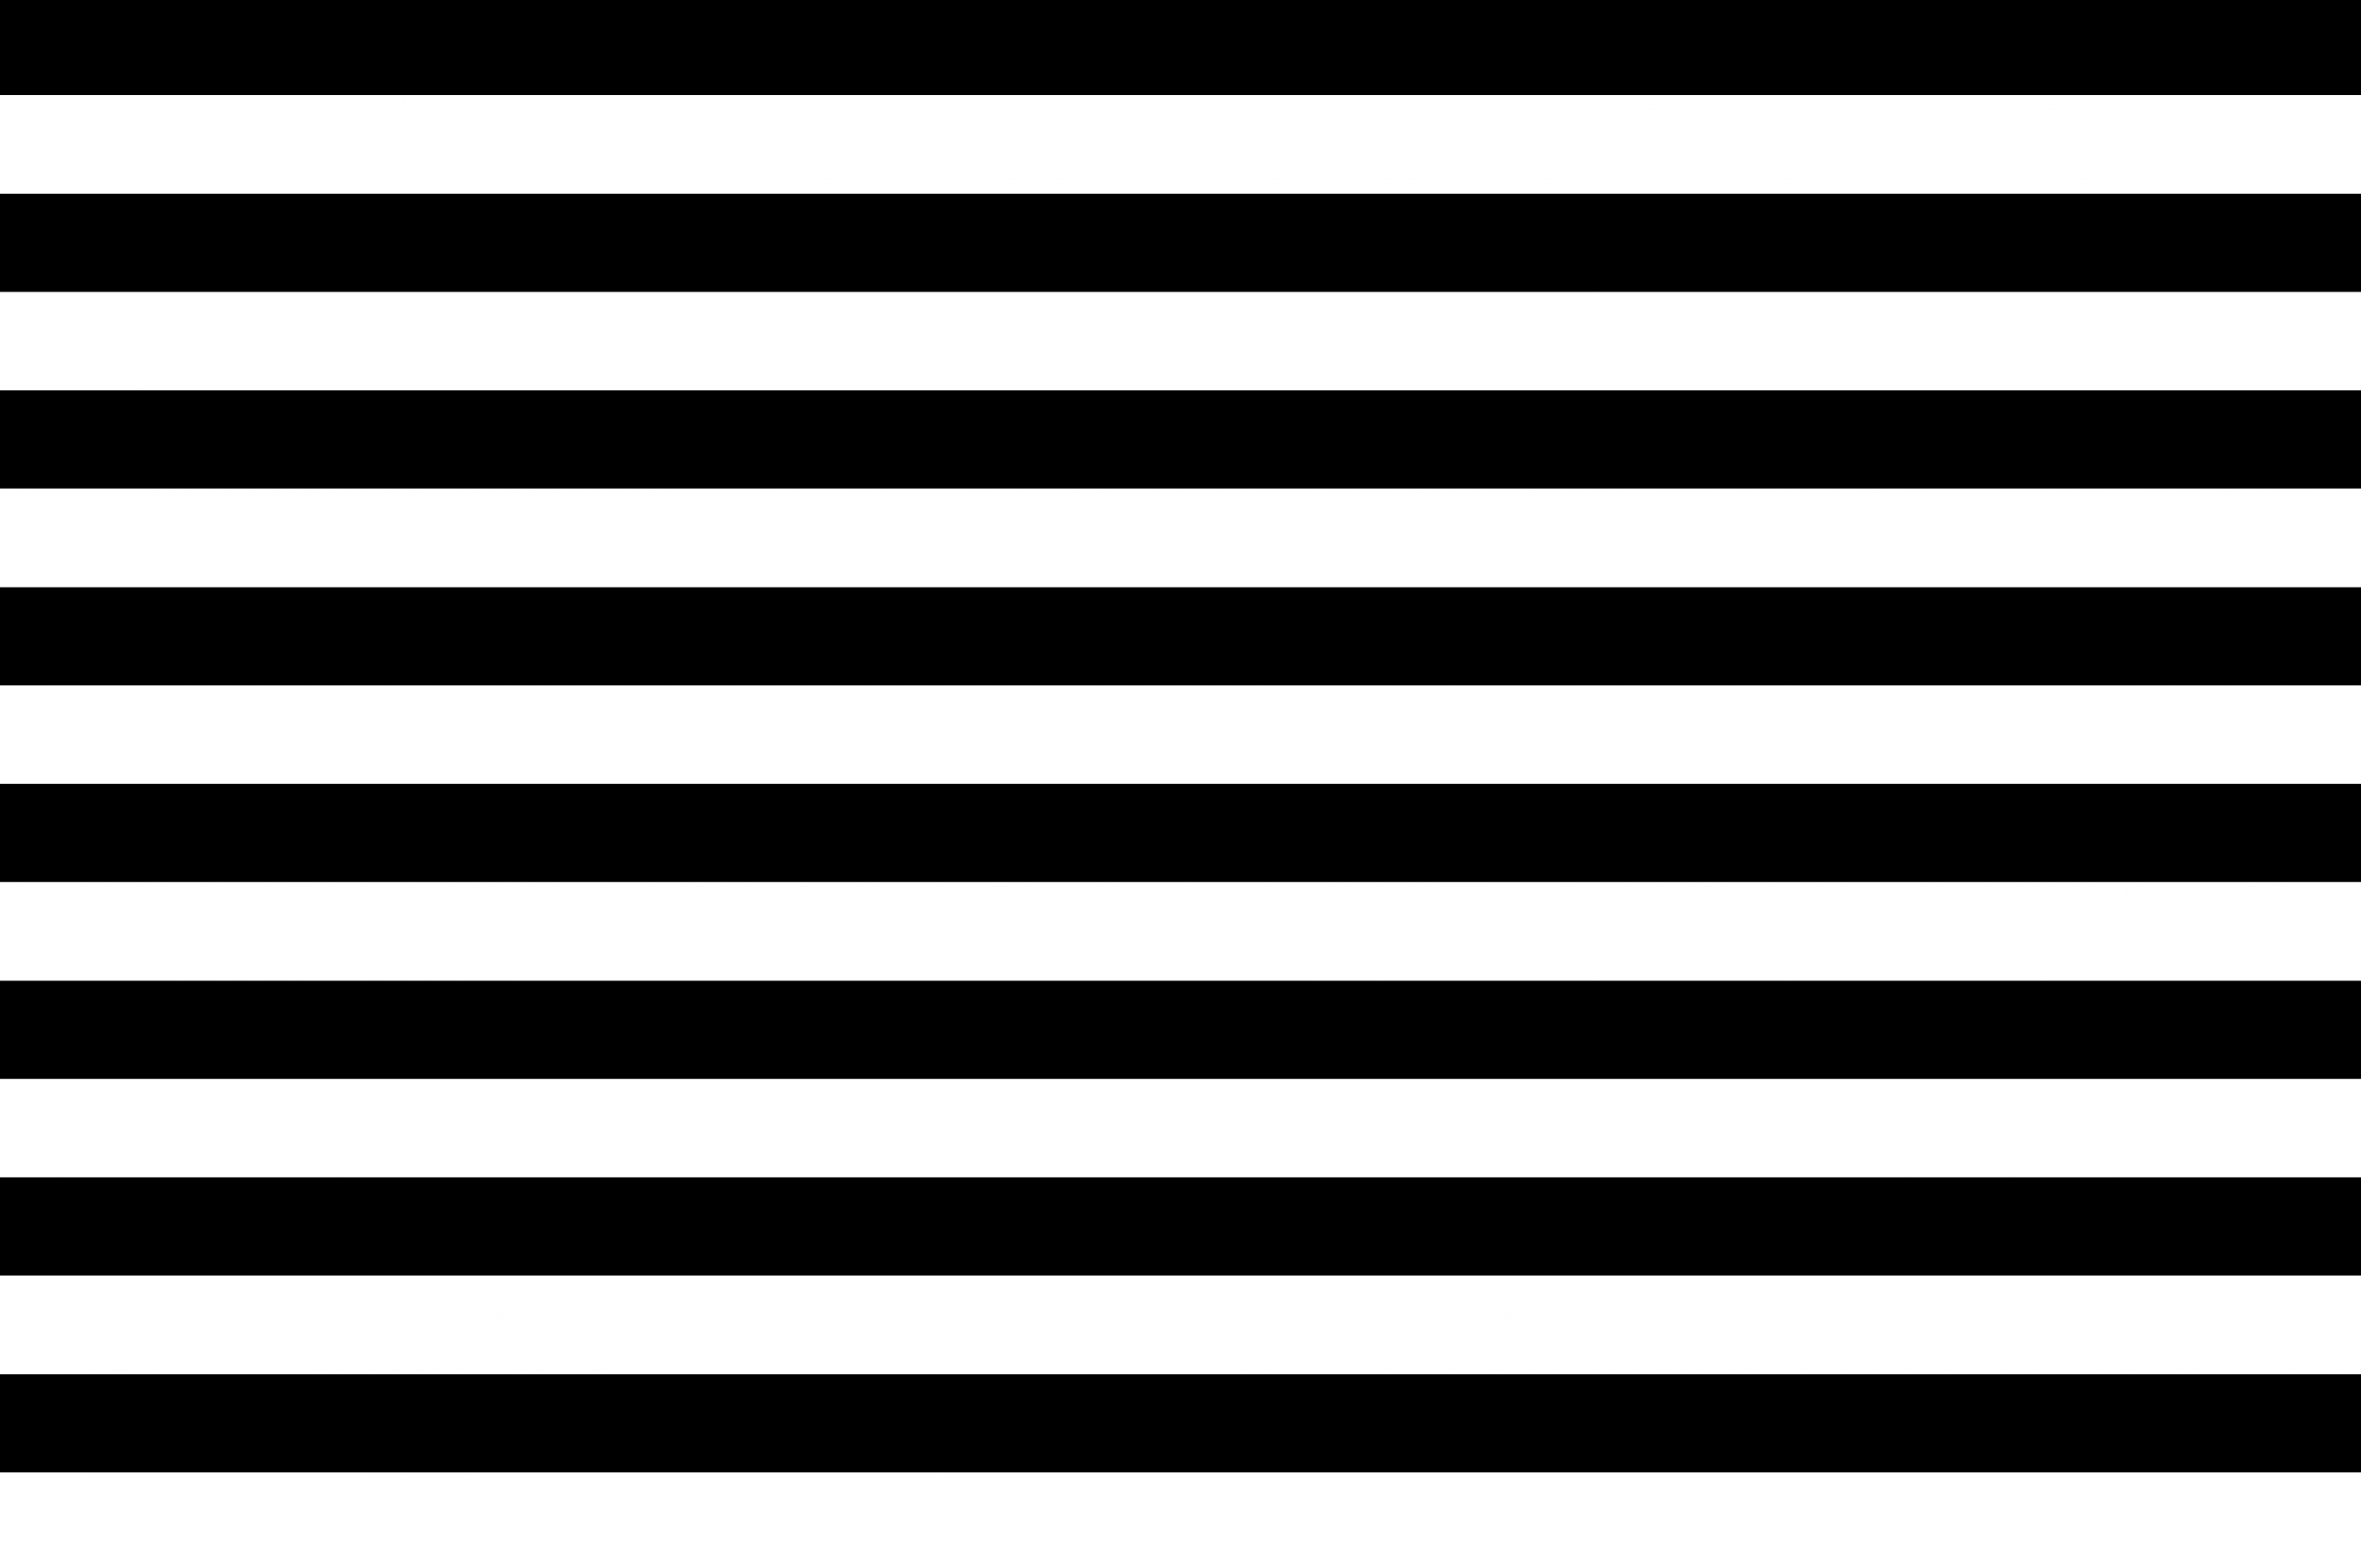 Free download Black and White Striped Pattern Clip Art.